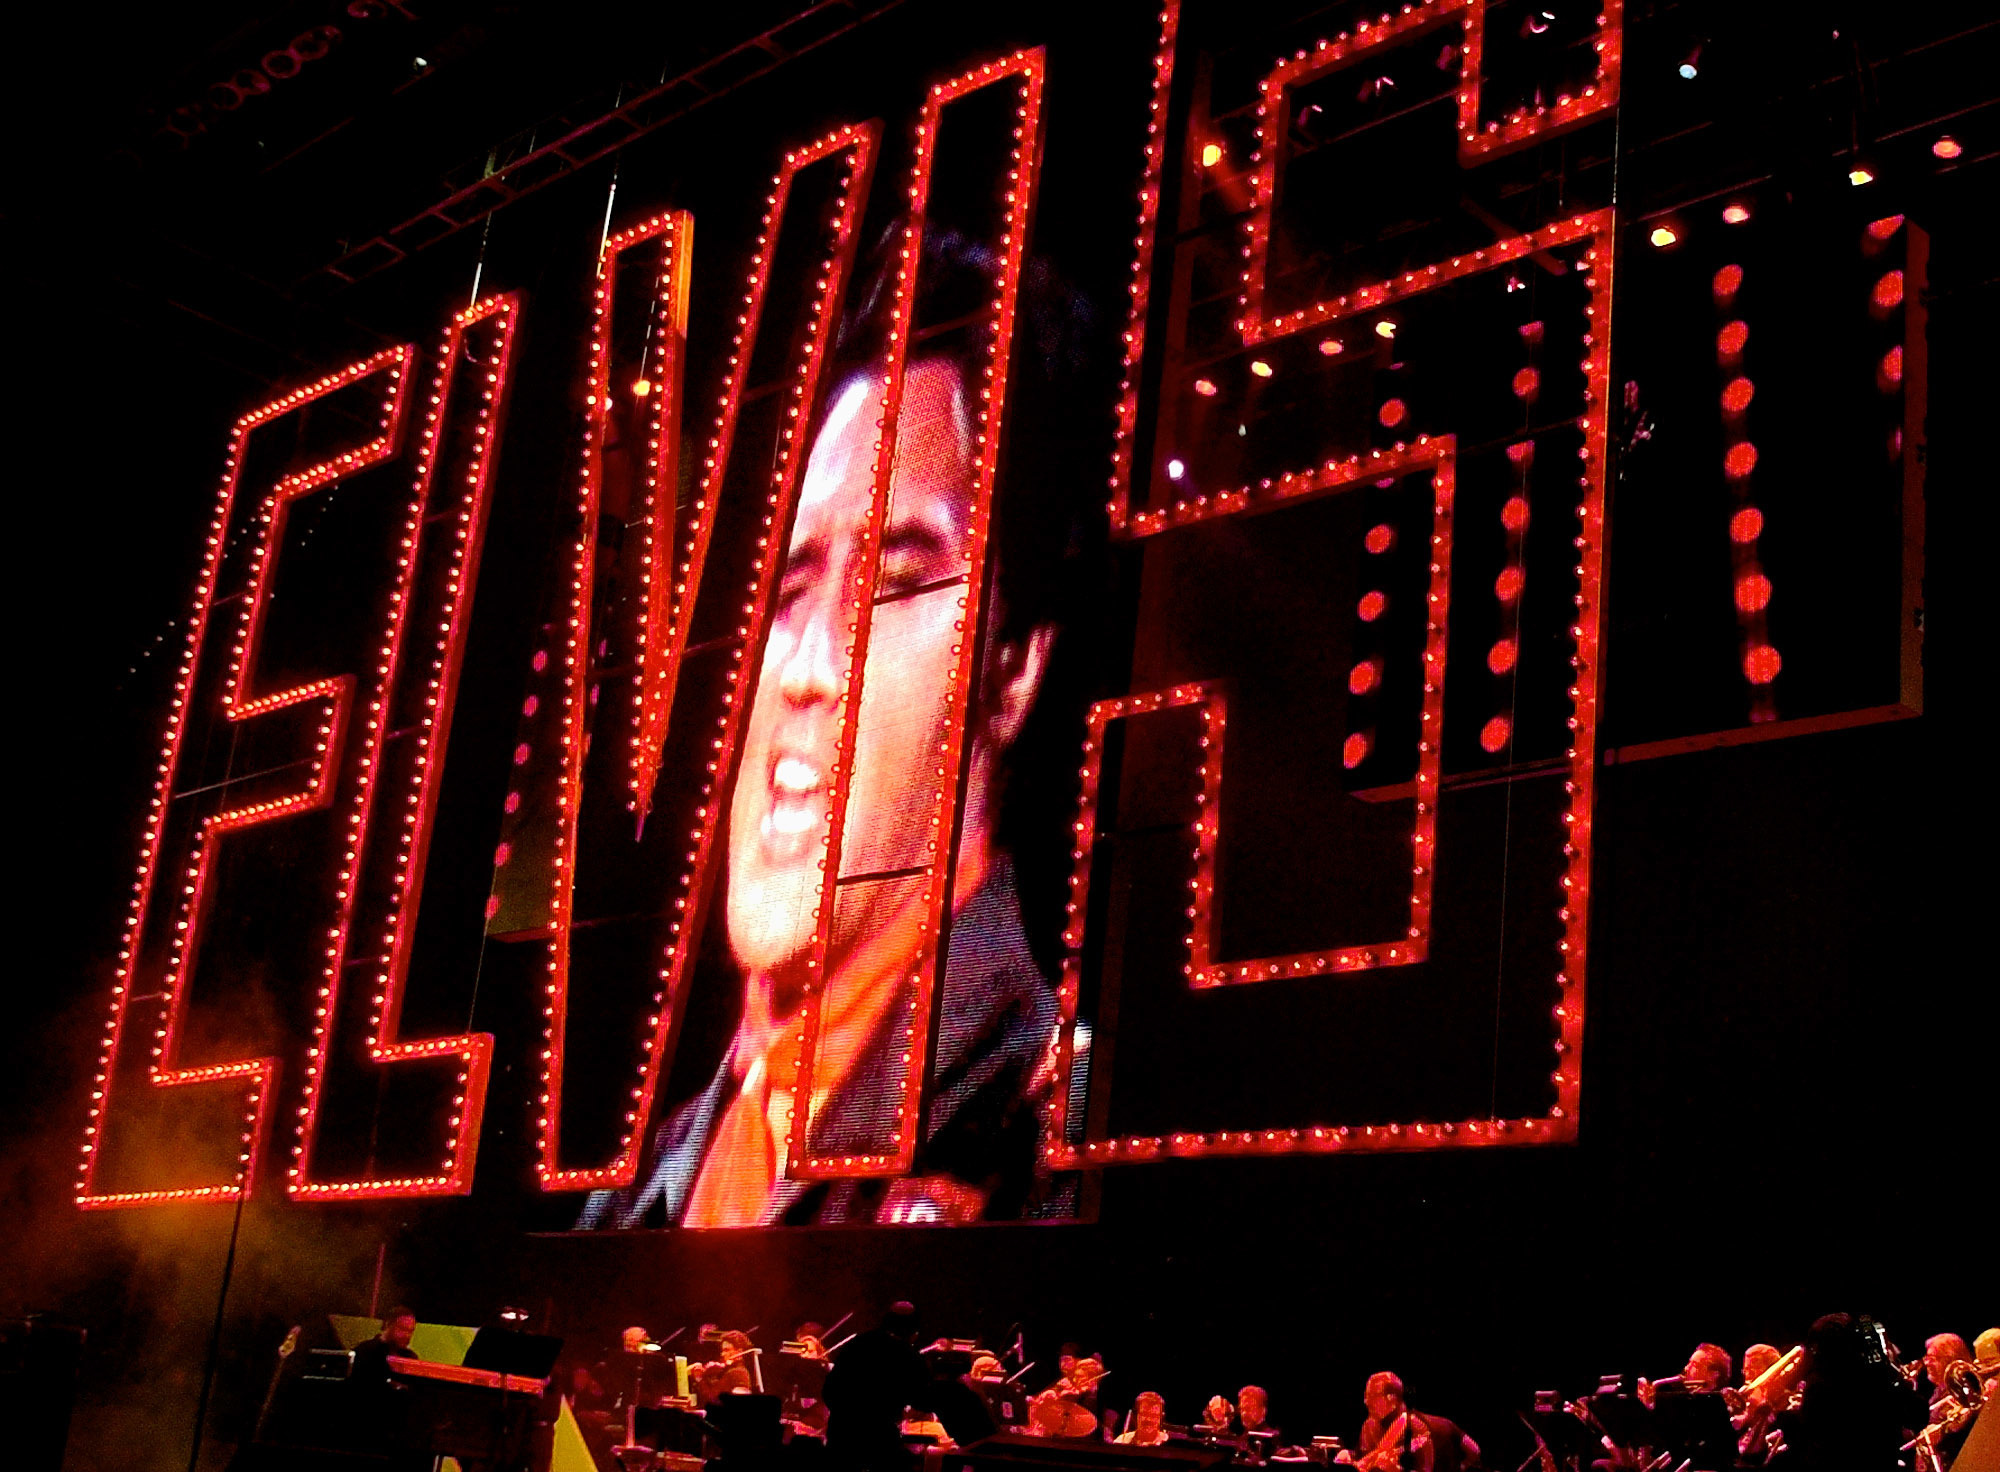 "This Aug. 16, 2002 file photo shows an image of Elvis Presley singing as his band plays below at the start of the Elvis Presley 25th Anniversary Concert in Memphis, Tenn. The red Elvis sign is from the 1968 Elvis 'comeback tour."" Friends and fans of late singer and actor Elvis Presley are descending on Memphis, Tennessee, for Elvis Week, the annual celebration of his life and career. It coincides with the 40th anniversary of the passing of Presley, who died on Aug. 16, 1977. (AP Photo/Stephan Savoia, File)"